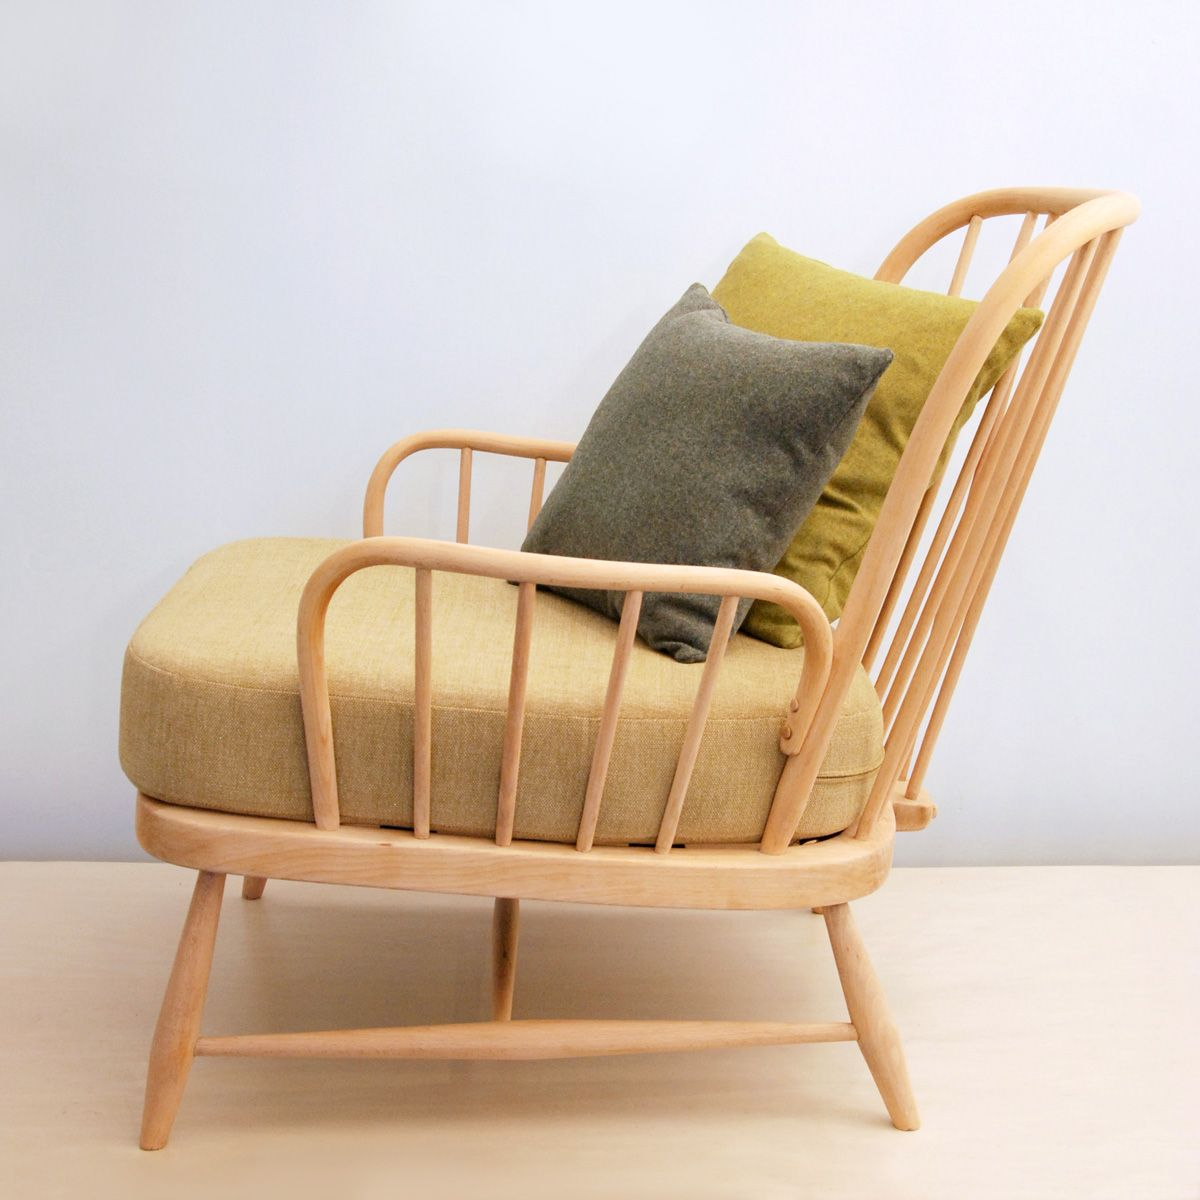 Ercol Jubilee armchair designed by Lucian ErcolaniErcol Jubilee armchair designed by Lucian Ercolani   Ercol Jubilee  . Ercol Easy Chairs For Sale. Home Design Ideas